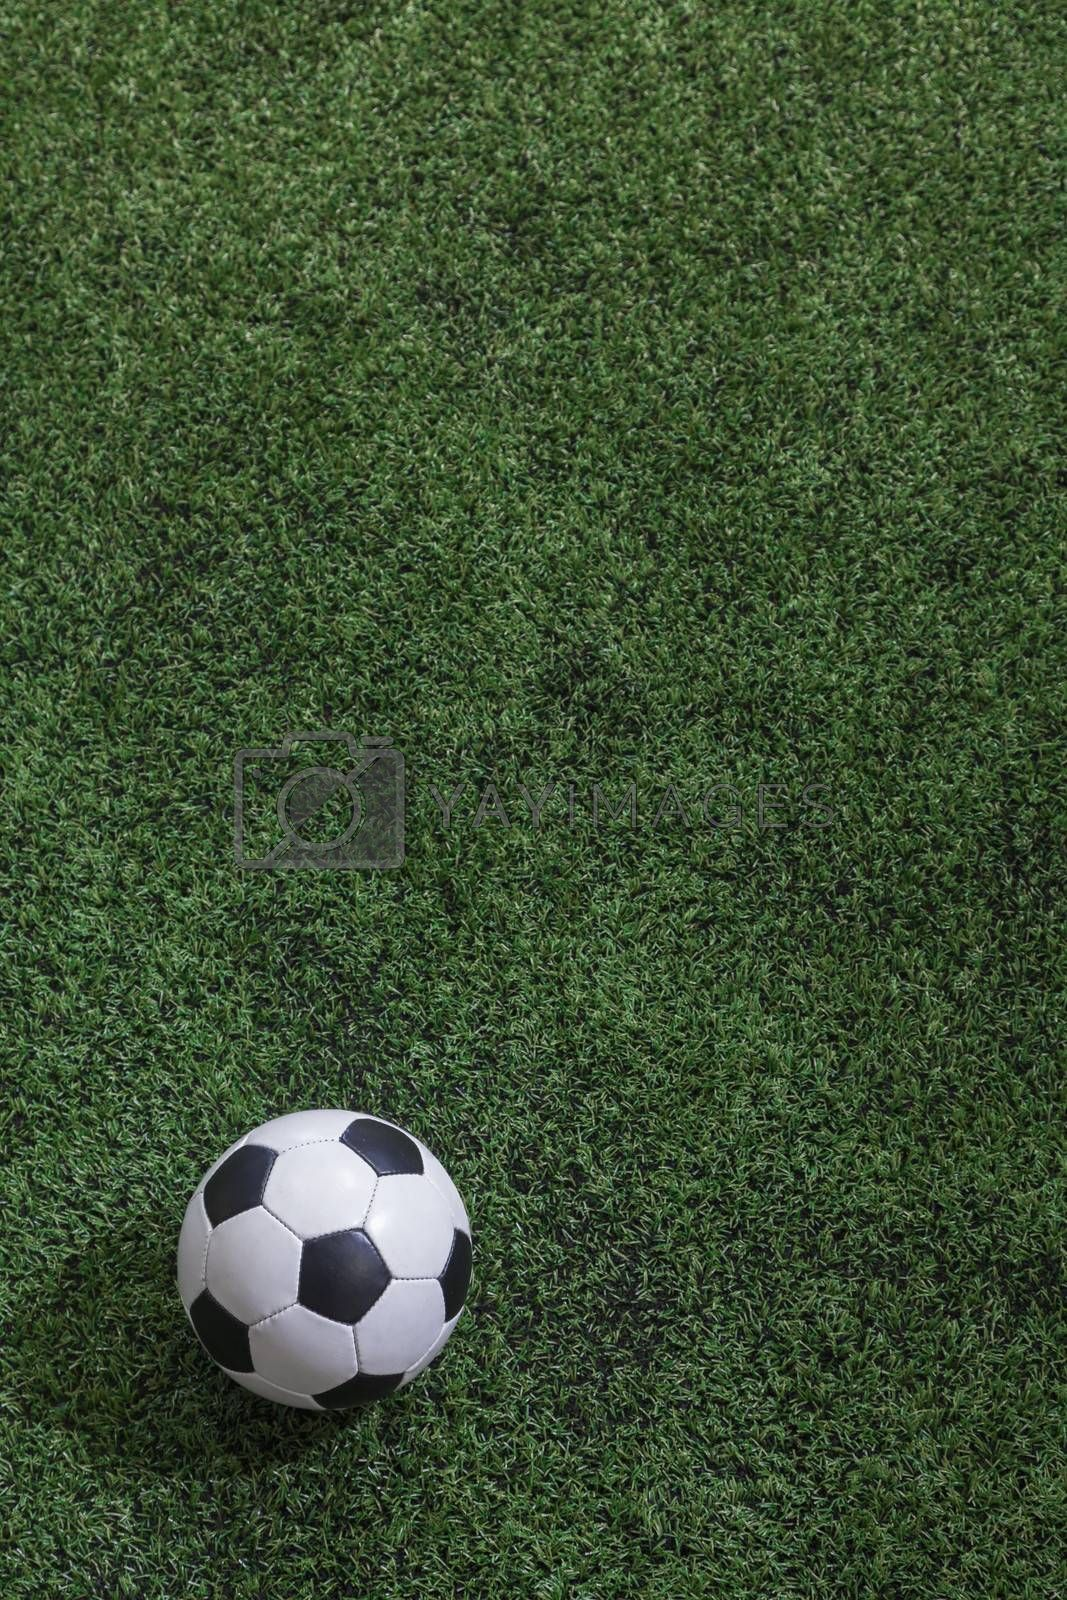 Soccer field with soccer ball